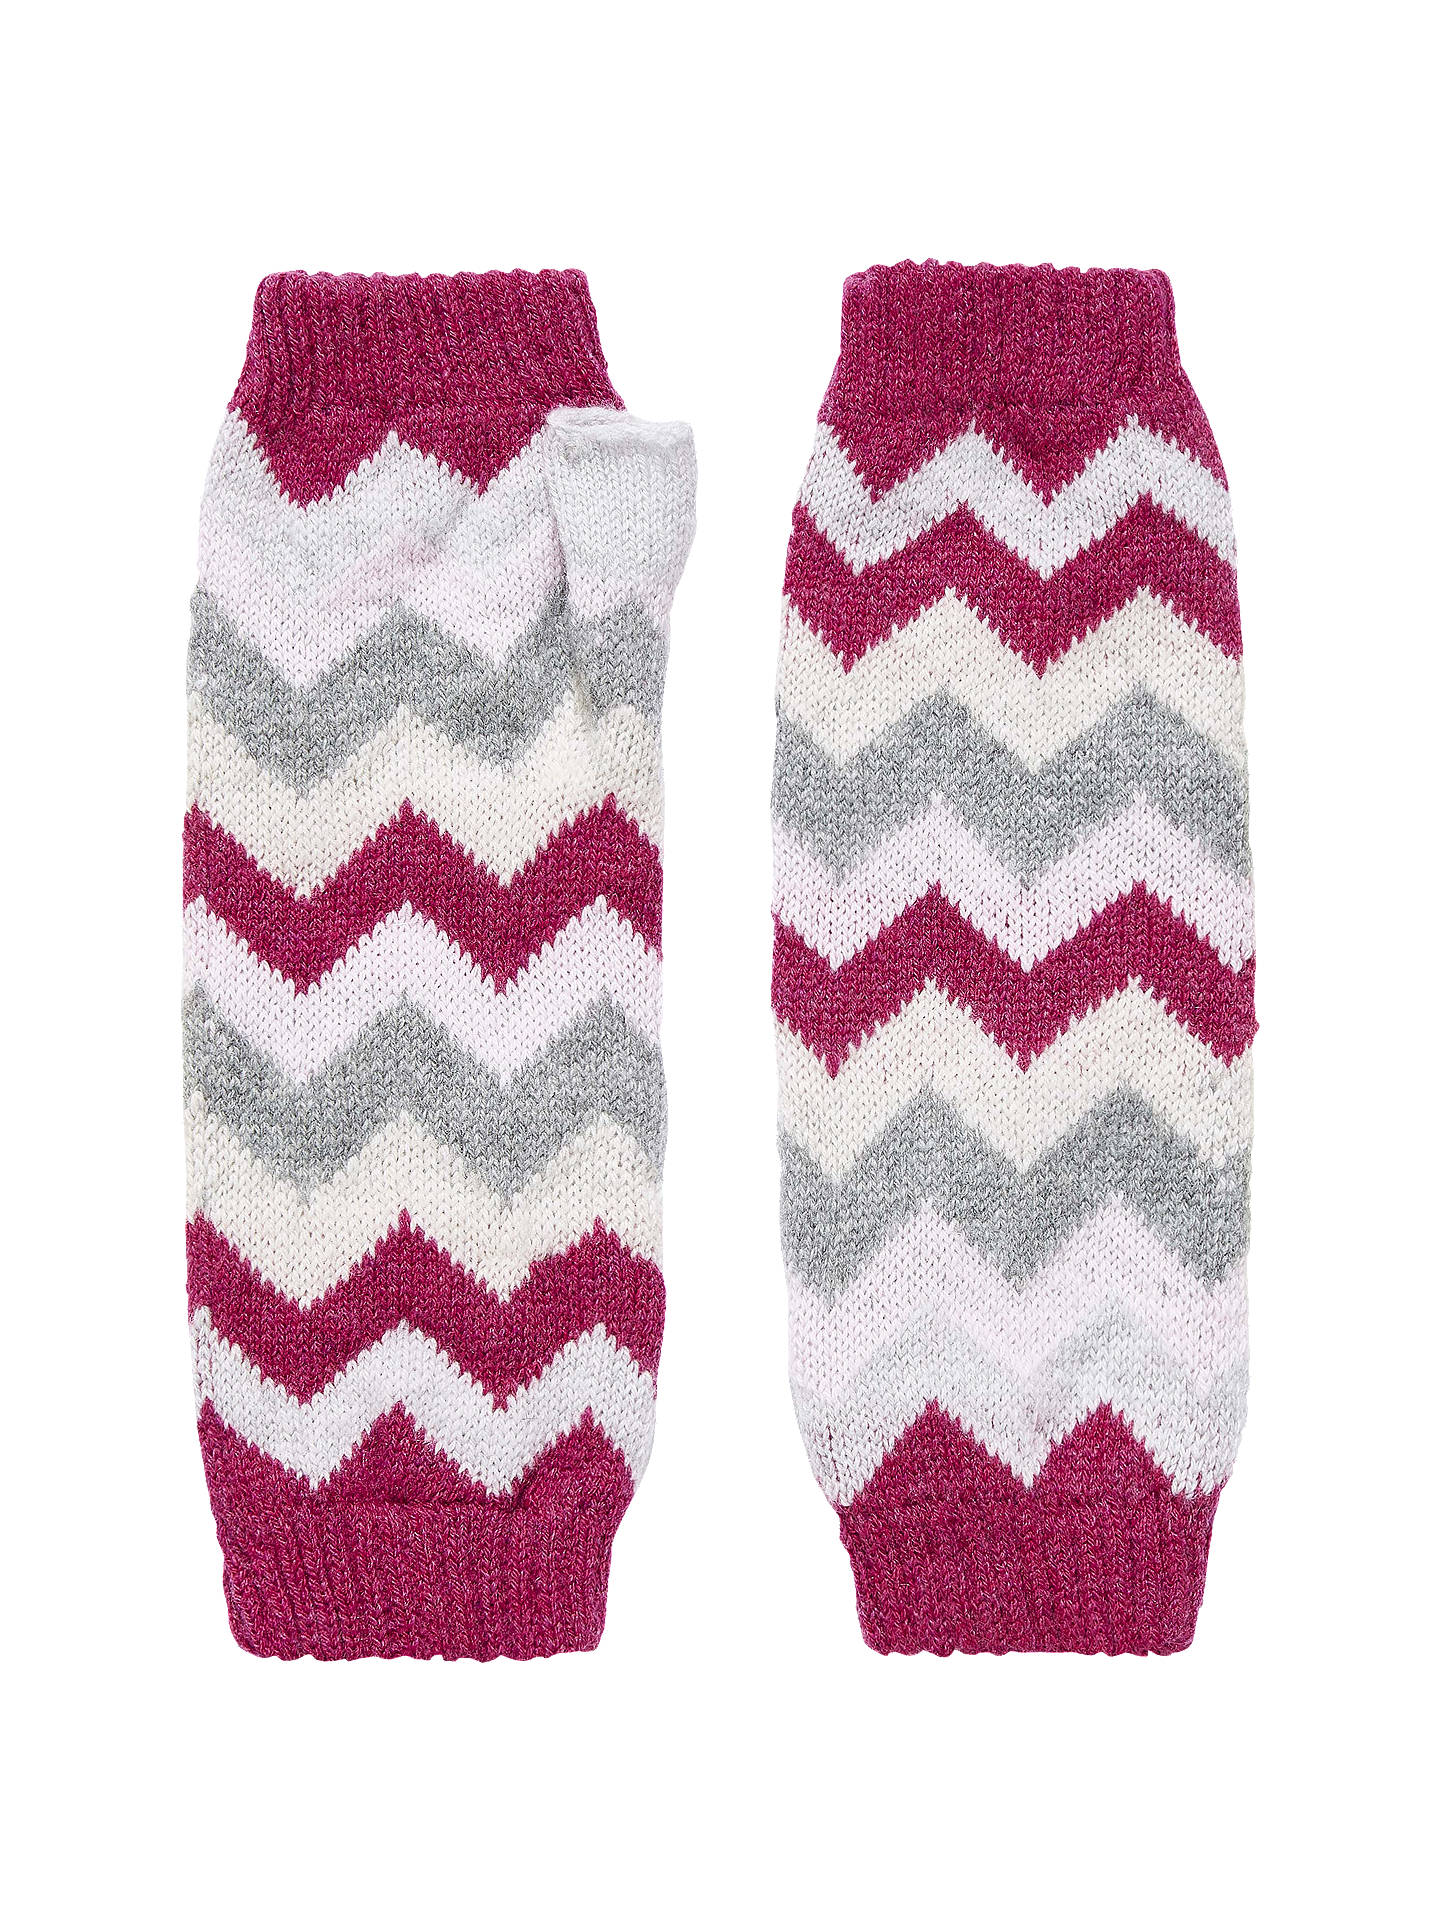 Brora Cashmere Wave Knit Mittens at John Lewis & Partners